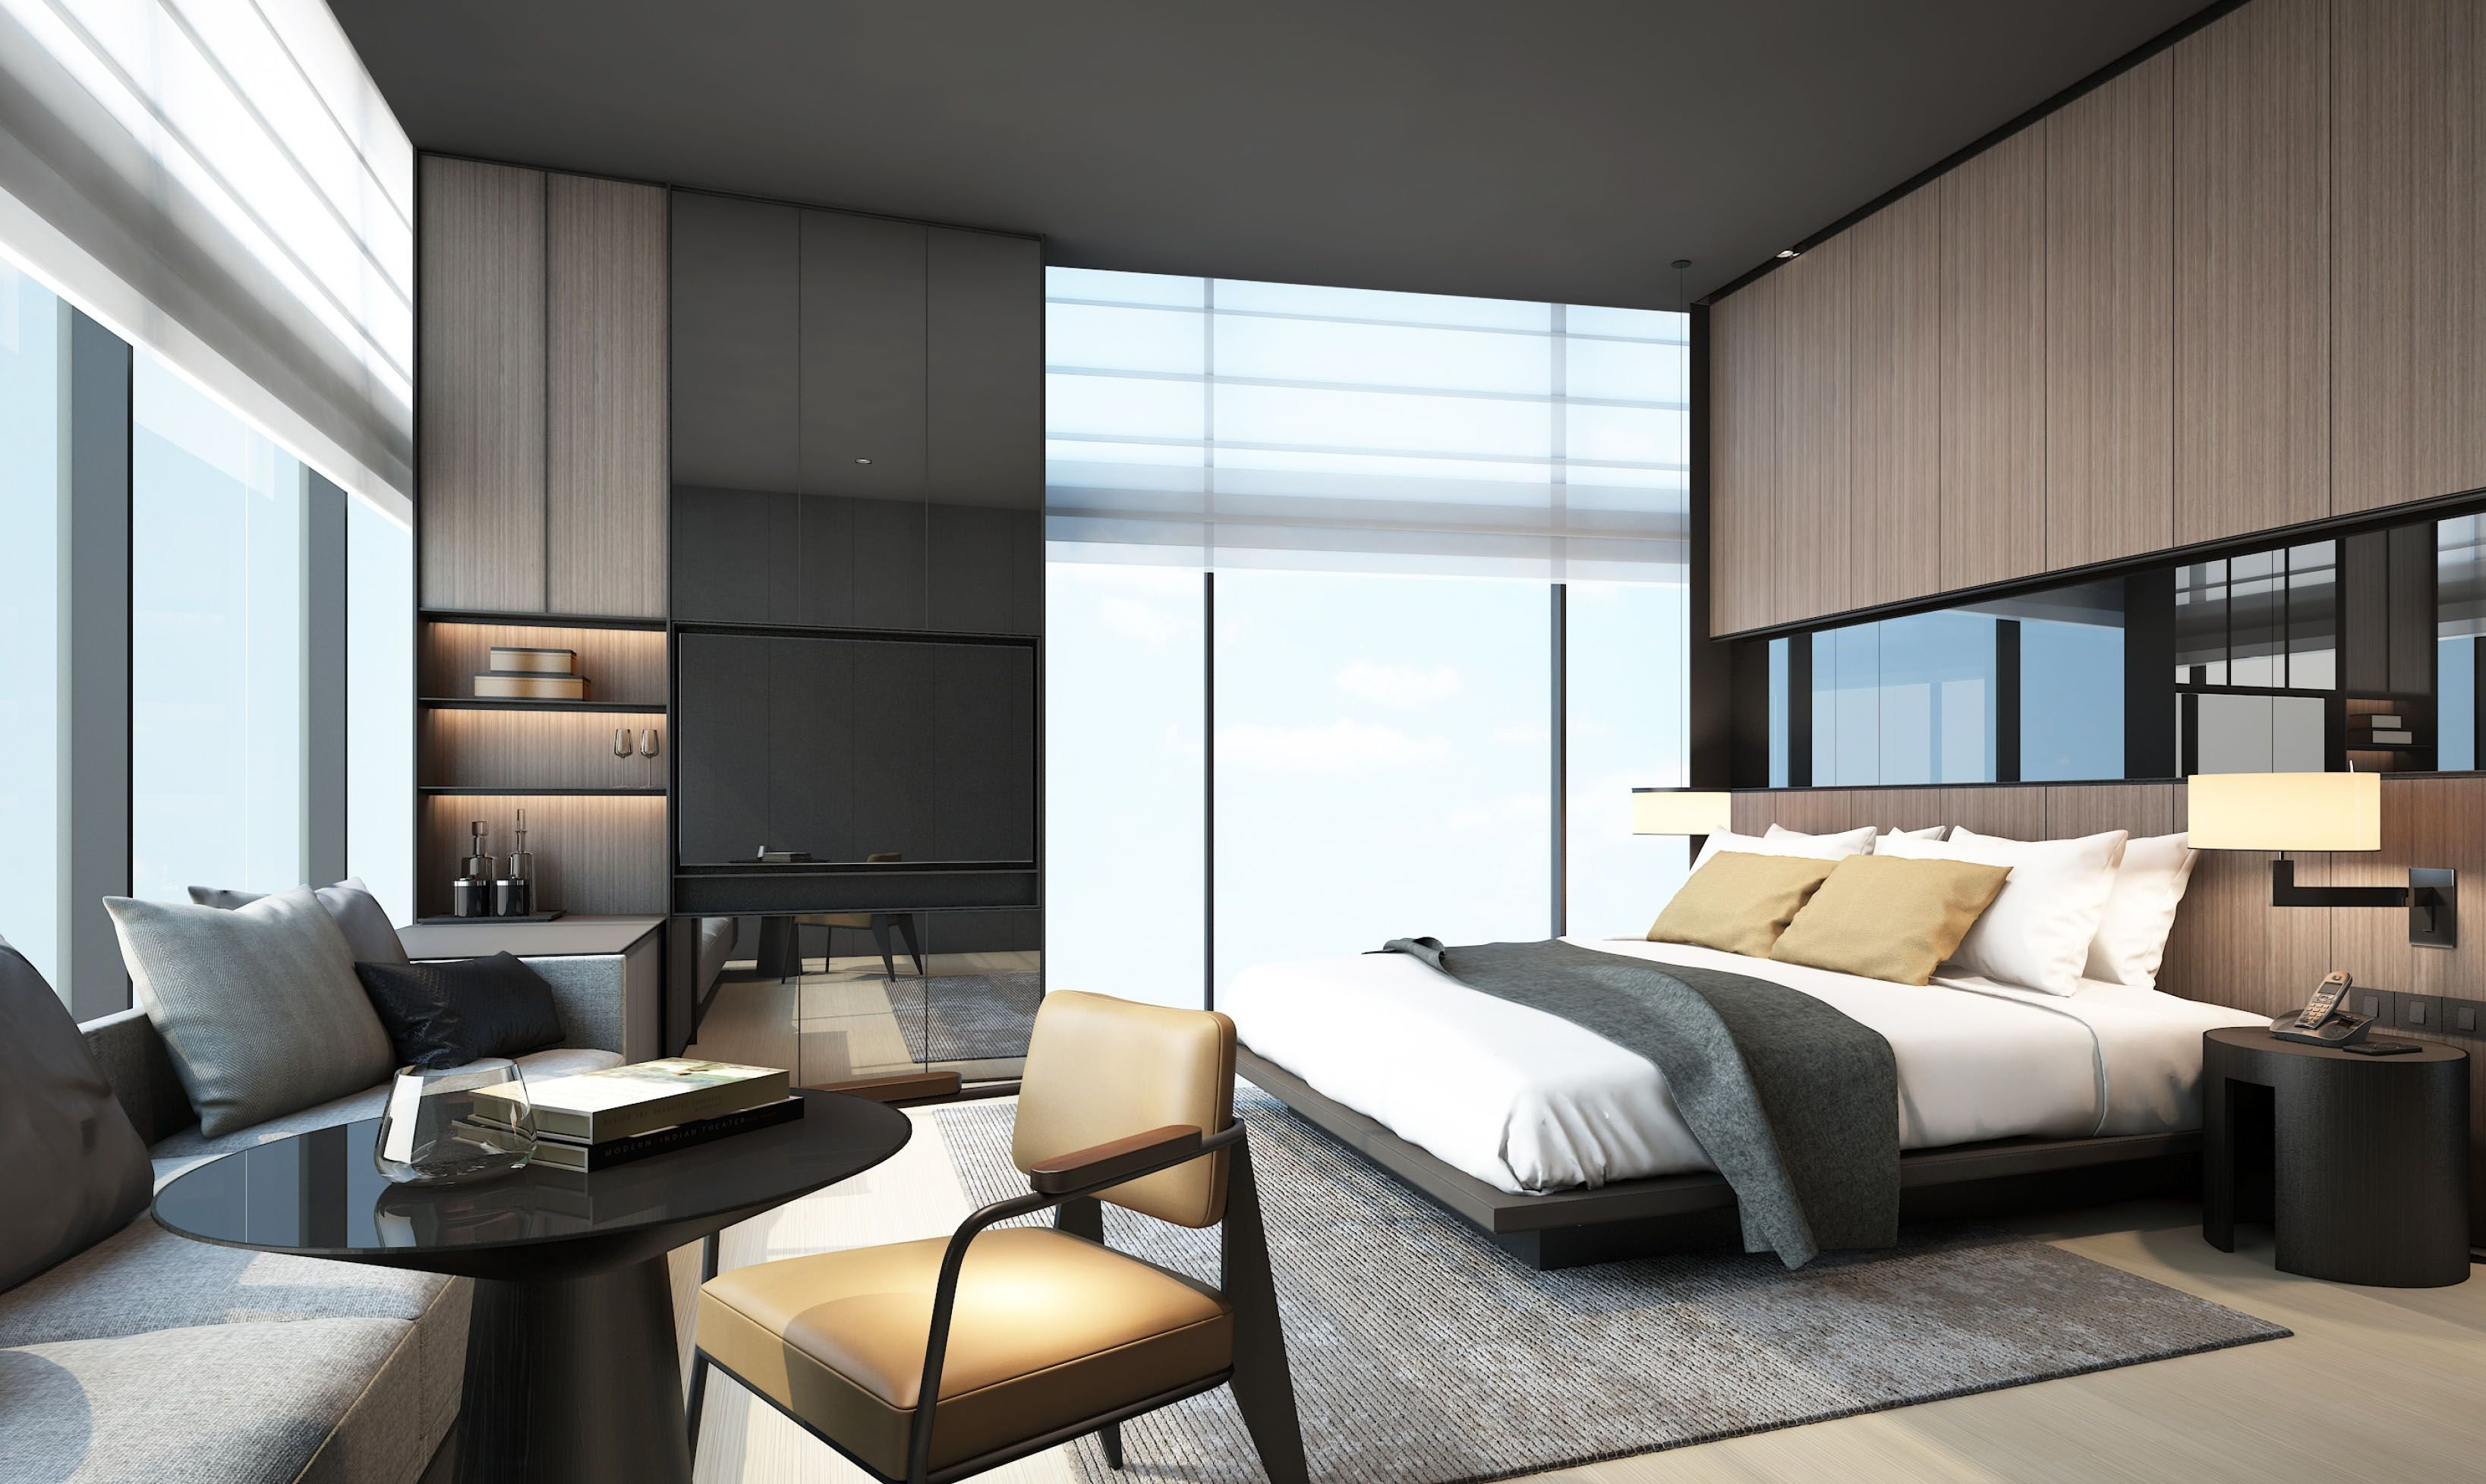 Best Scda Hotel Development Singapore Suites Ideas For With Pictures